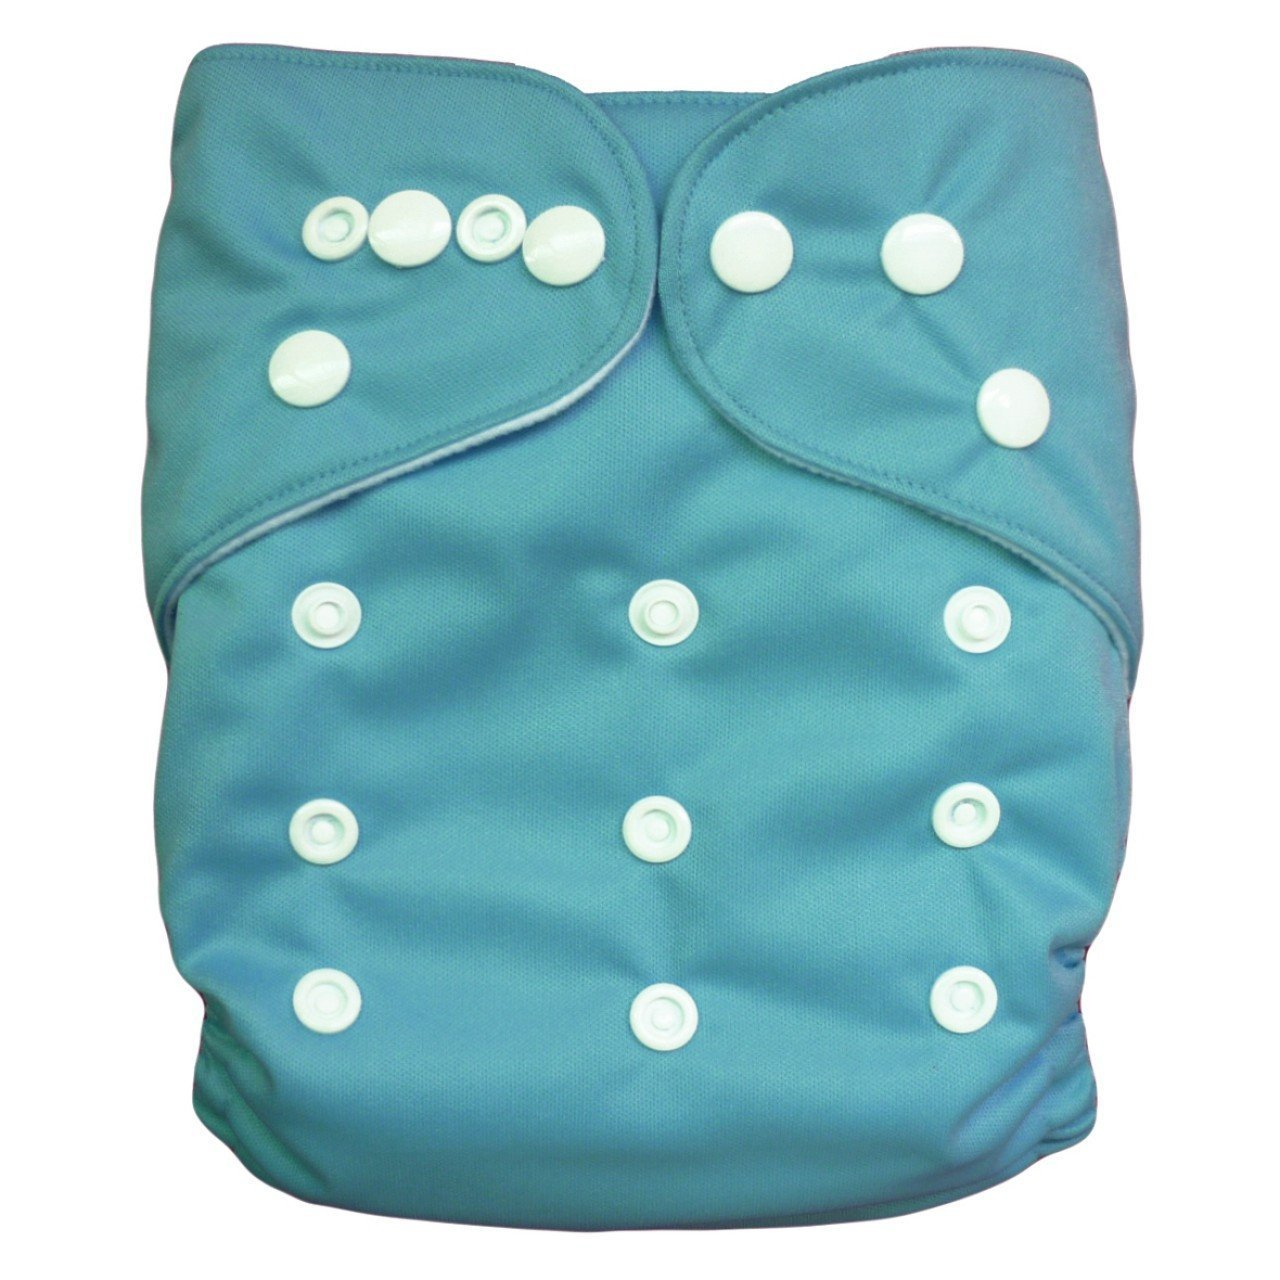 Express the Best Cloth Re-usable Nappy Pack - Blue - Naked Baby Eco Boutique